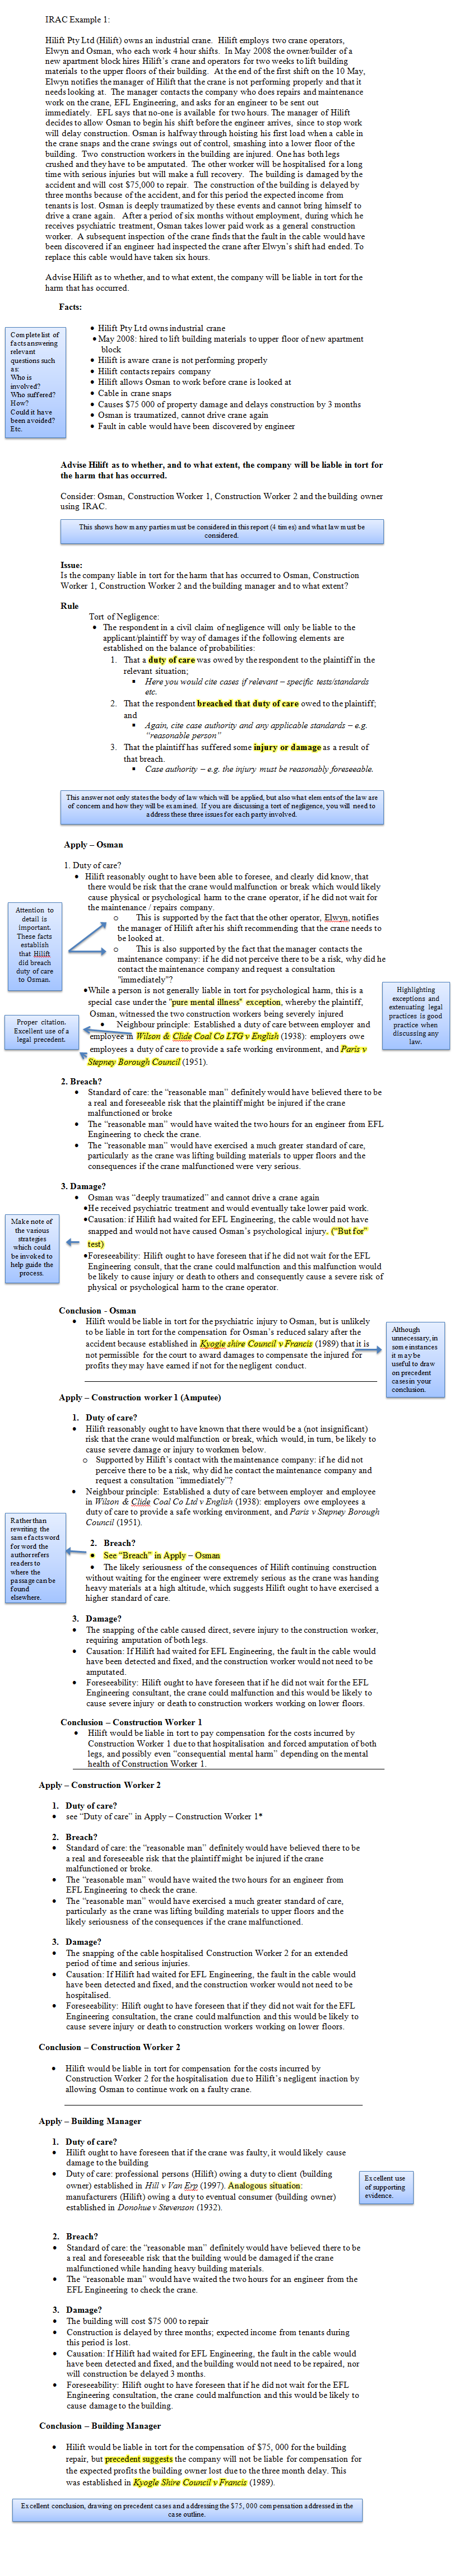 Irac Guide Uwa Example 2 Exam Prep And Template For Answering Legal Problem Qs In Exams Studying Law Law School Exam Prep